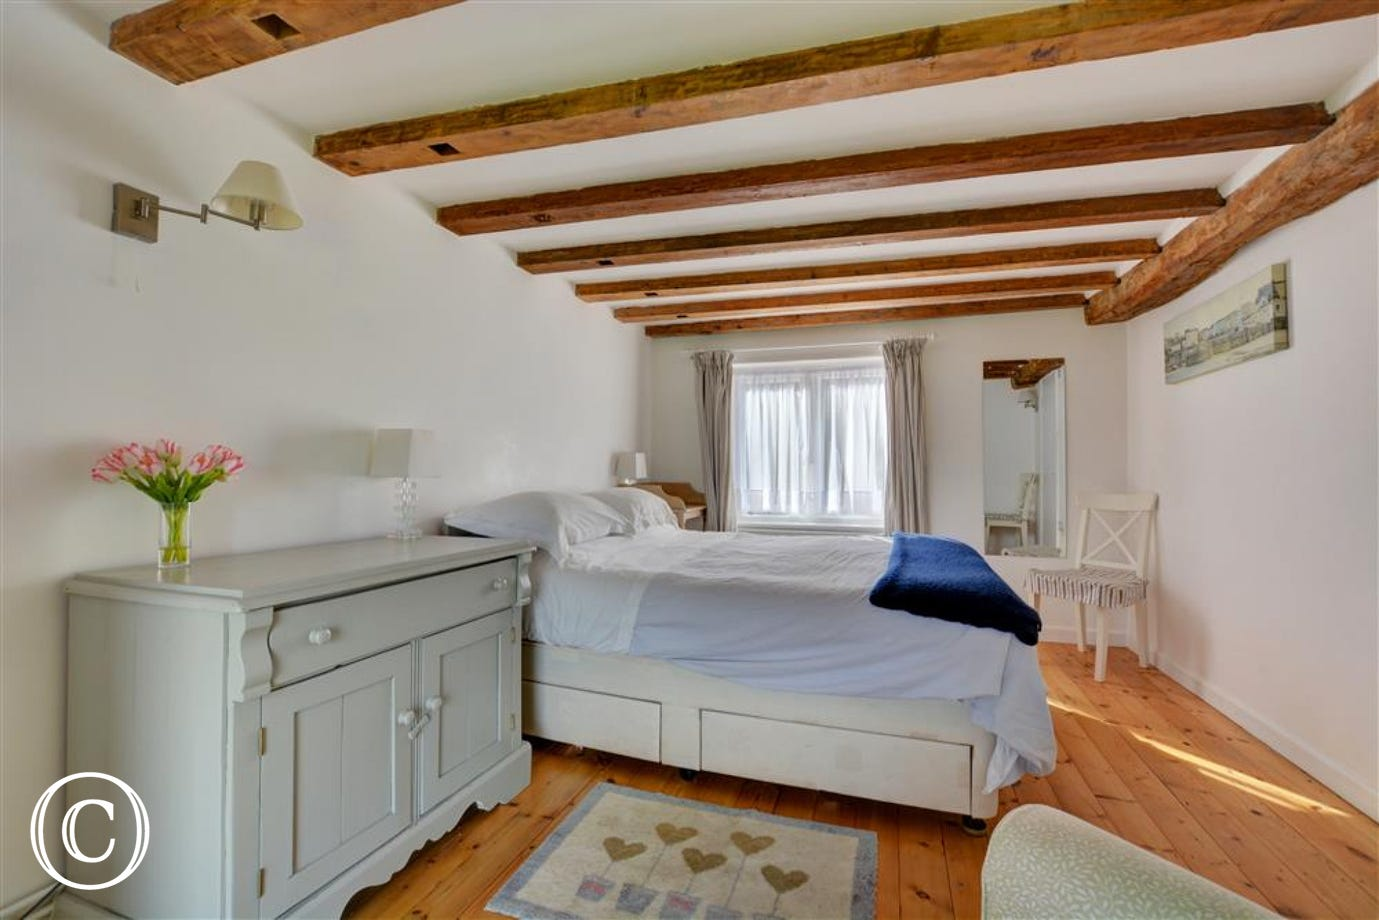 Bedroom with lovely open beams